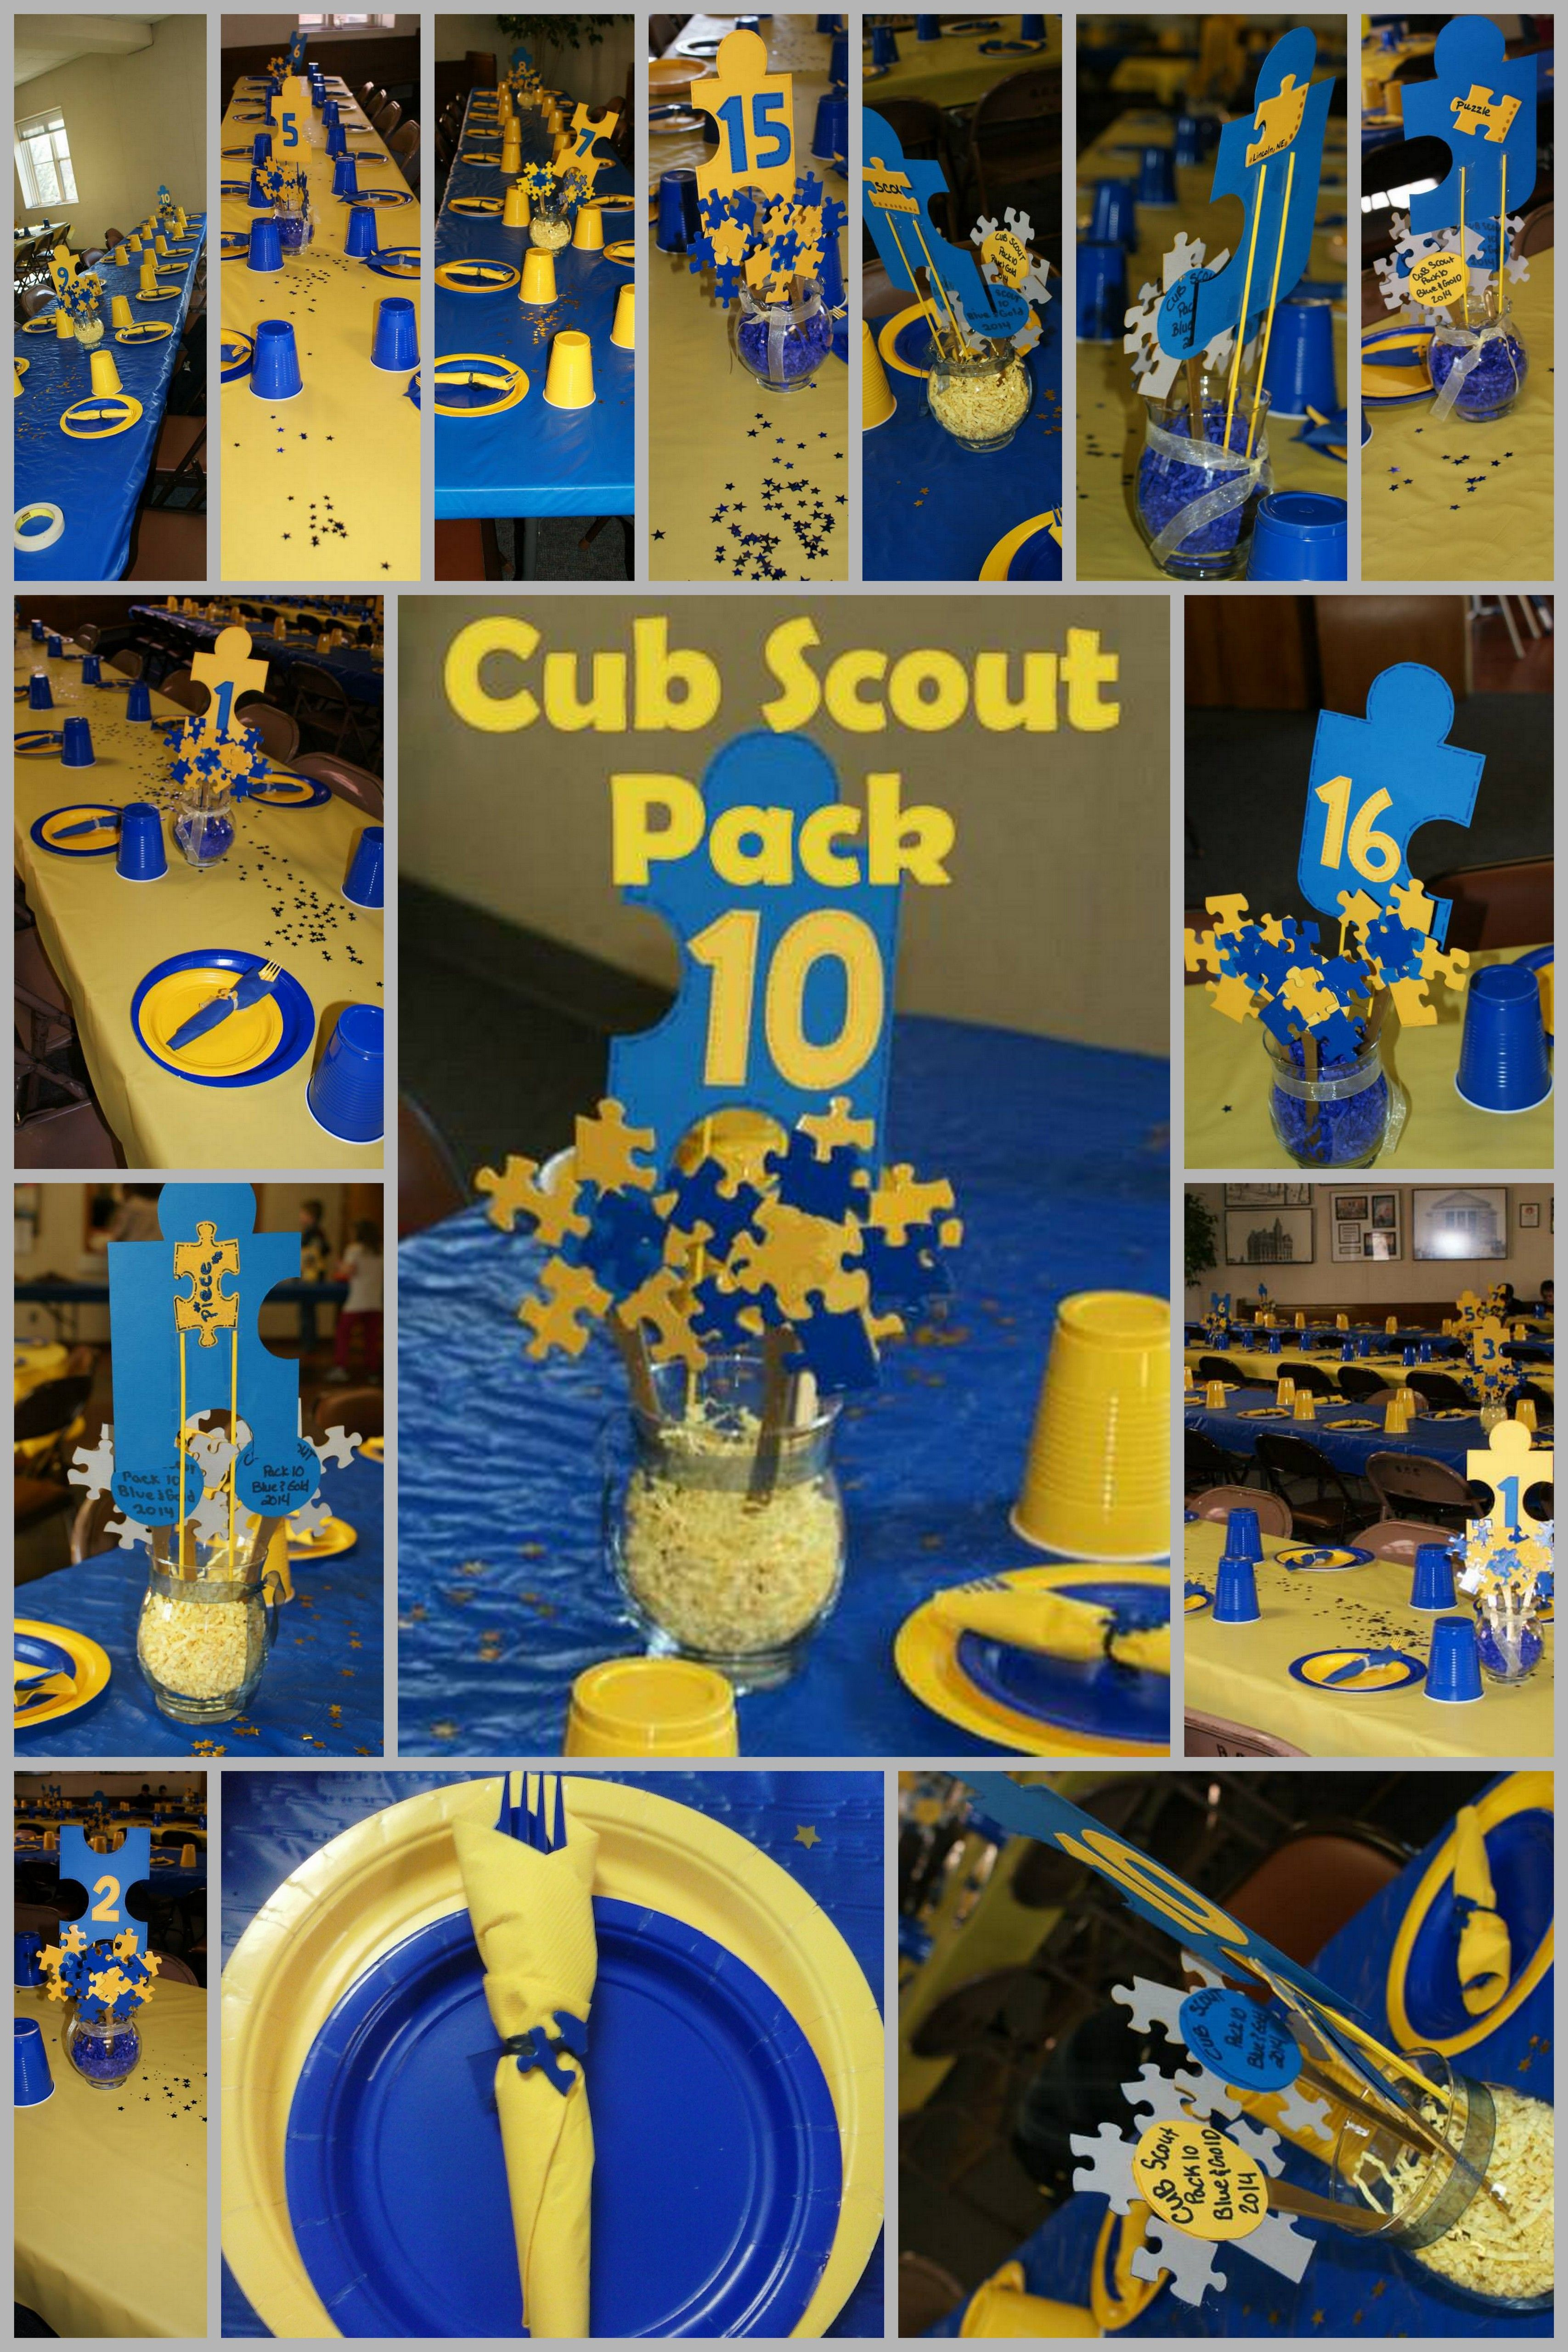 Blue And Gold Puzzle Piece Themed Party For Cub Scout Pack